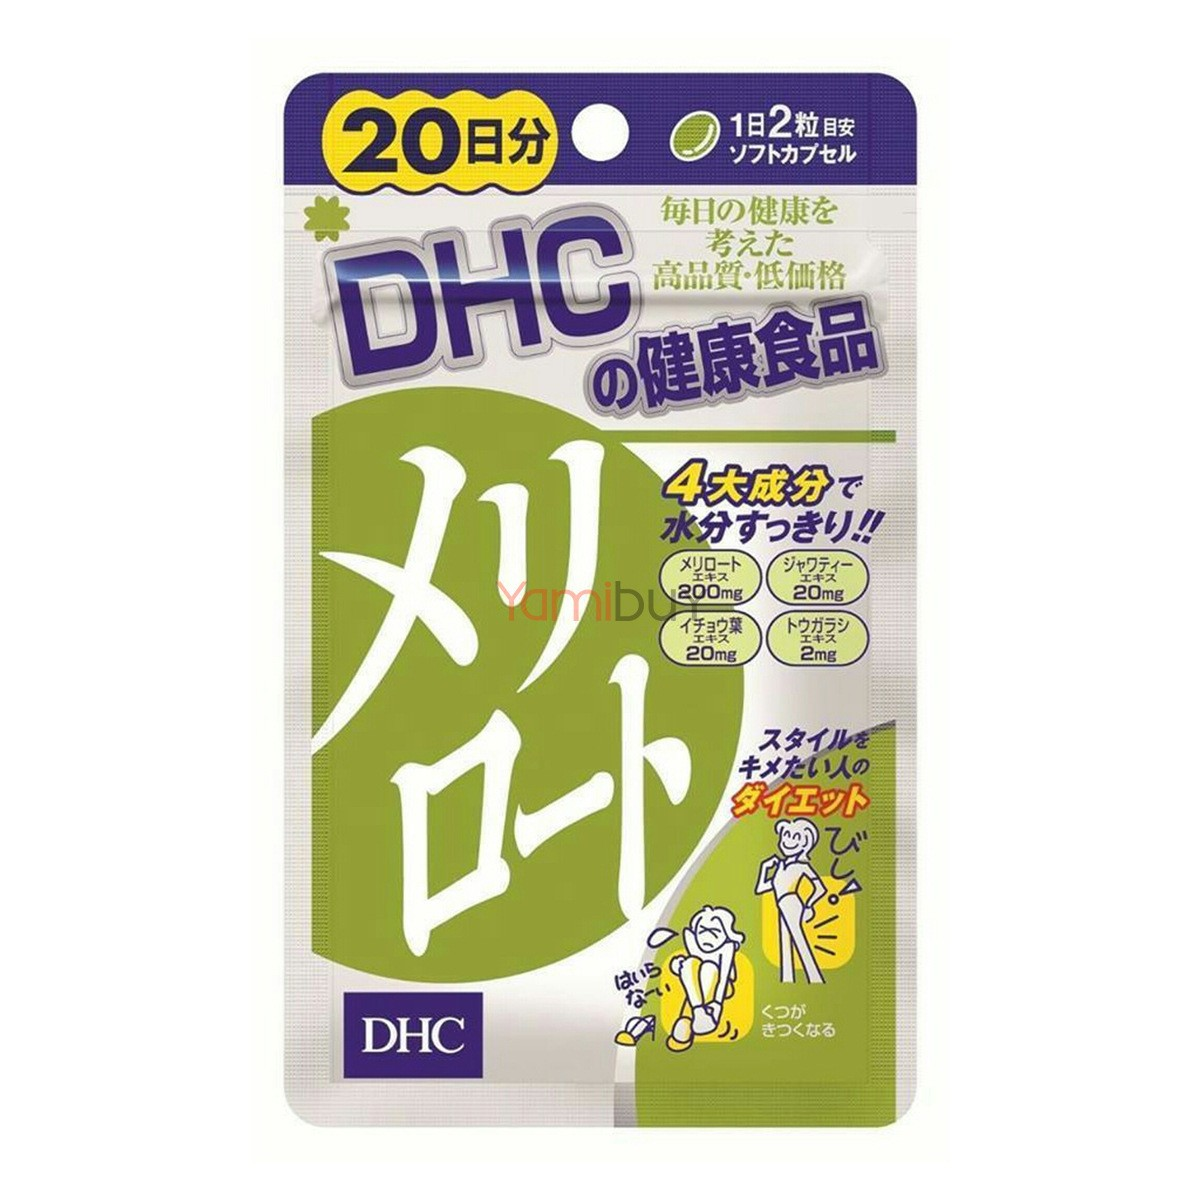 Yamibuy.com:Customer reviews:DHC Melilotus Officinalis Leg Slimming (40 grains)